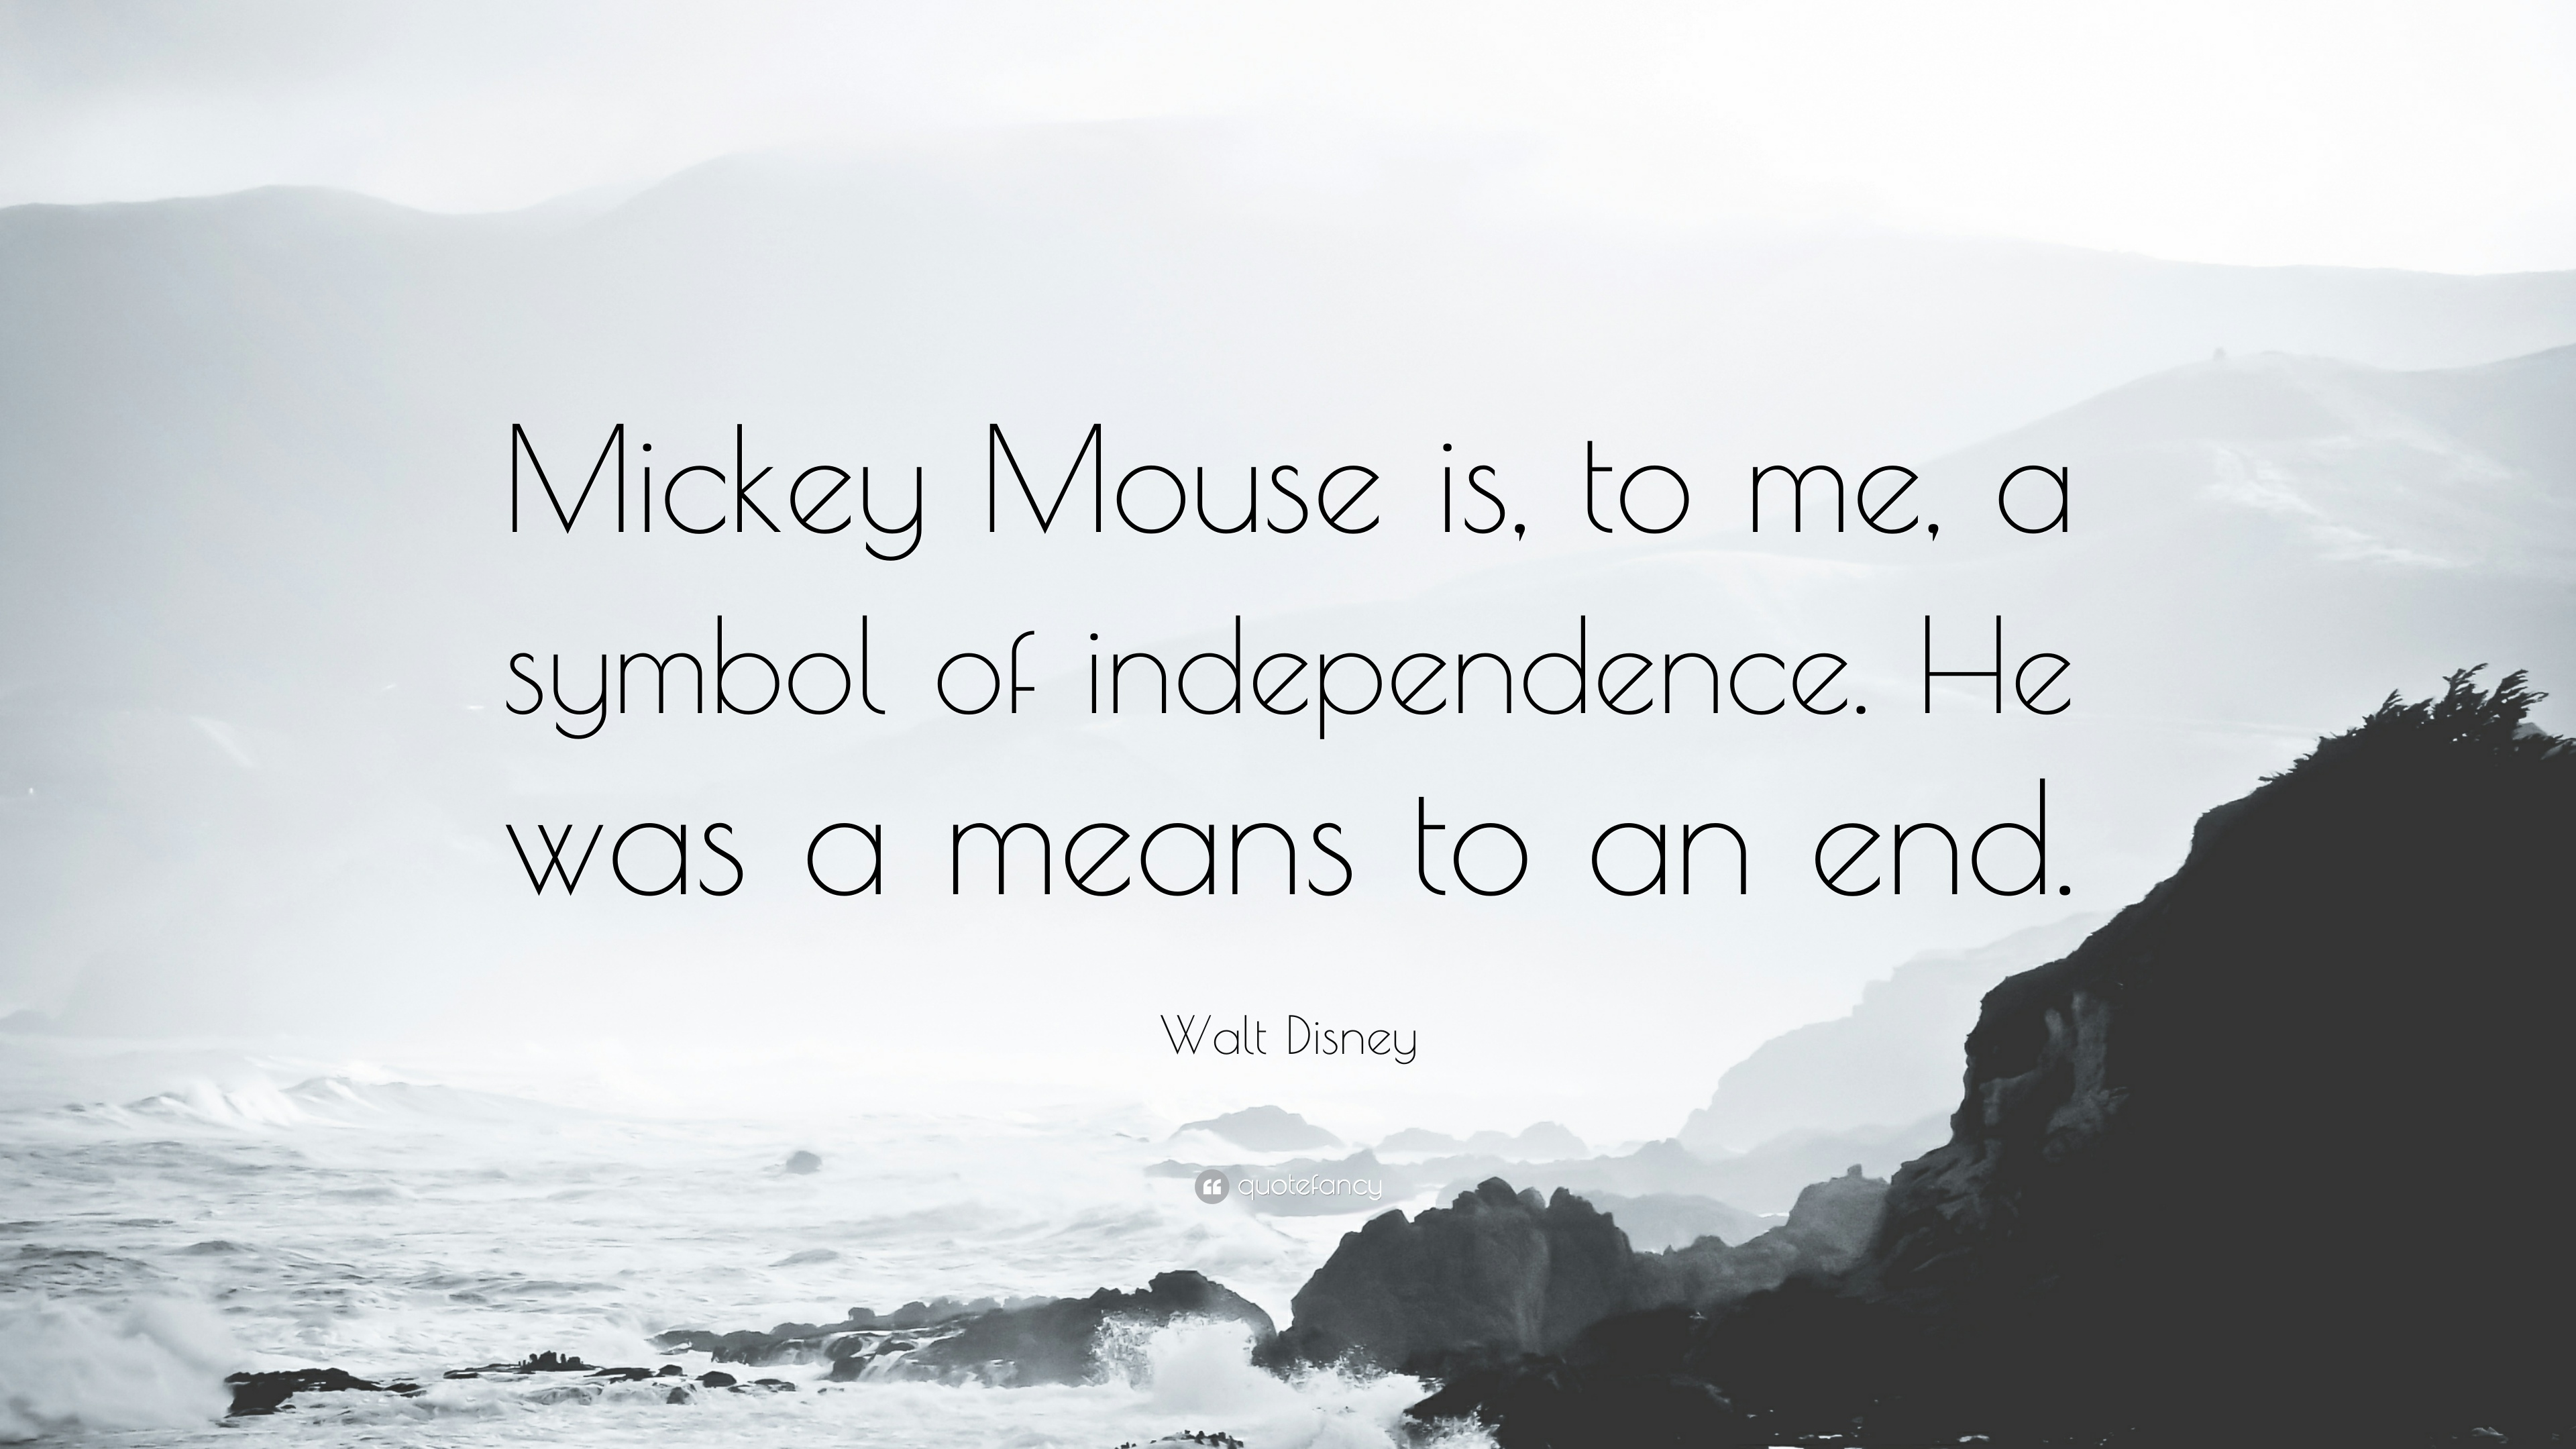 Quotes From Mickey Mouse: Walt Disney Quotes (100 Wallpapers)